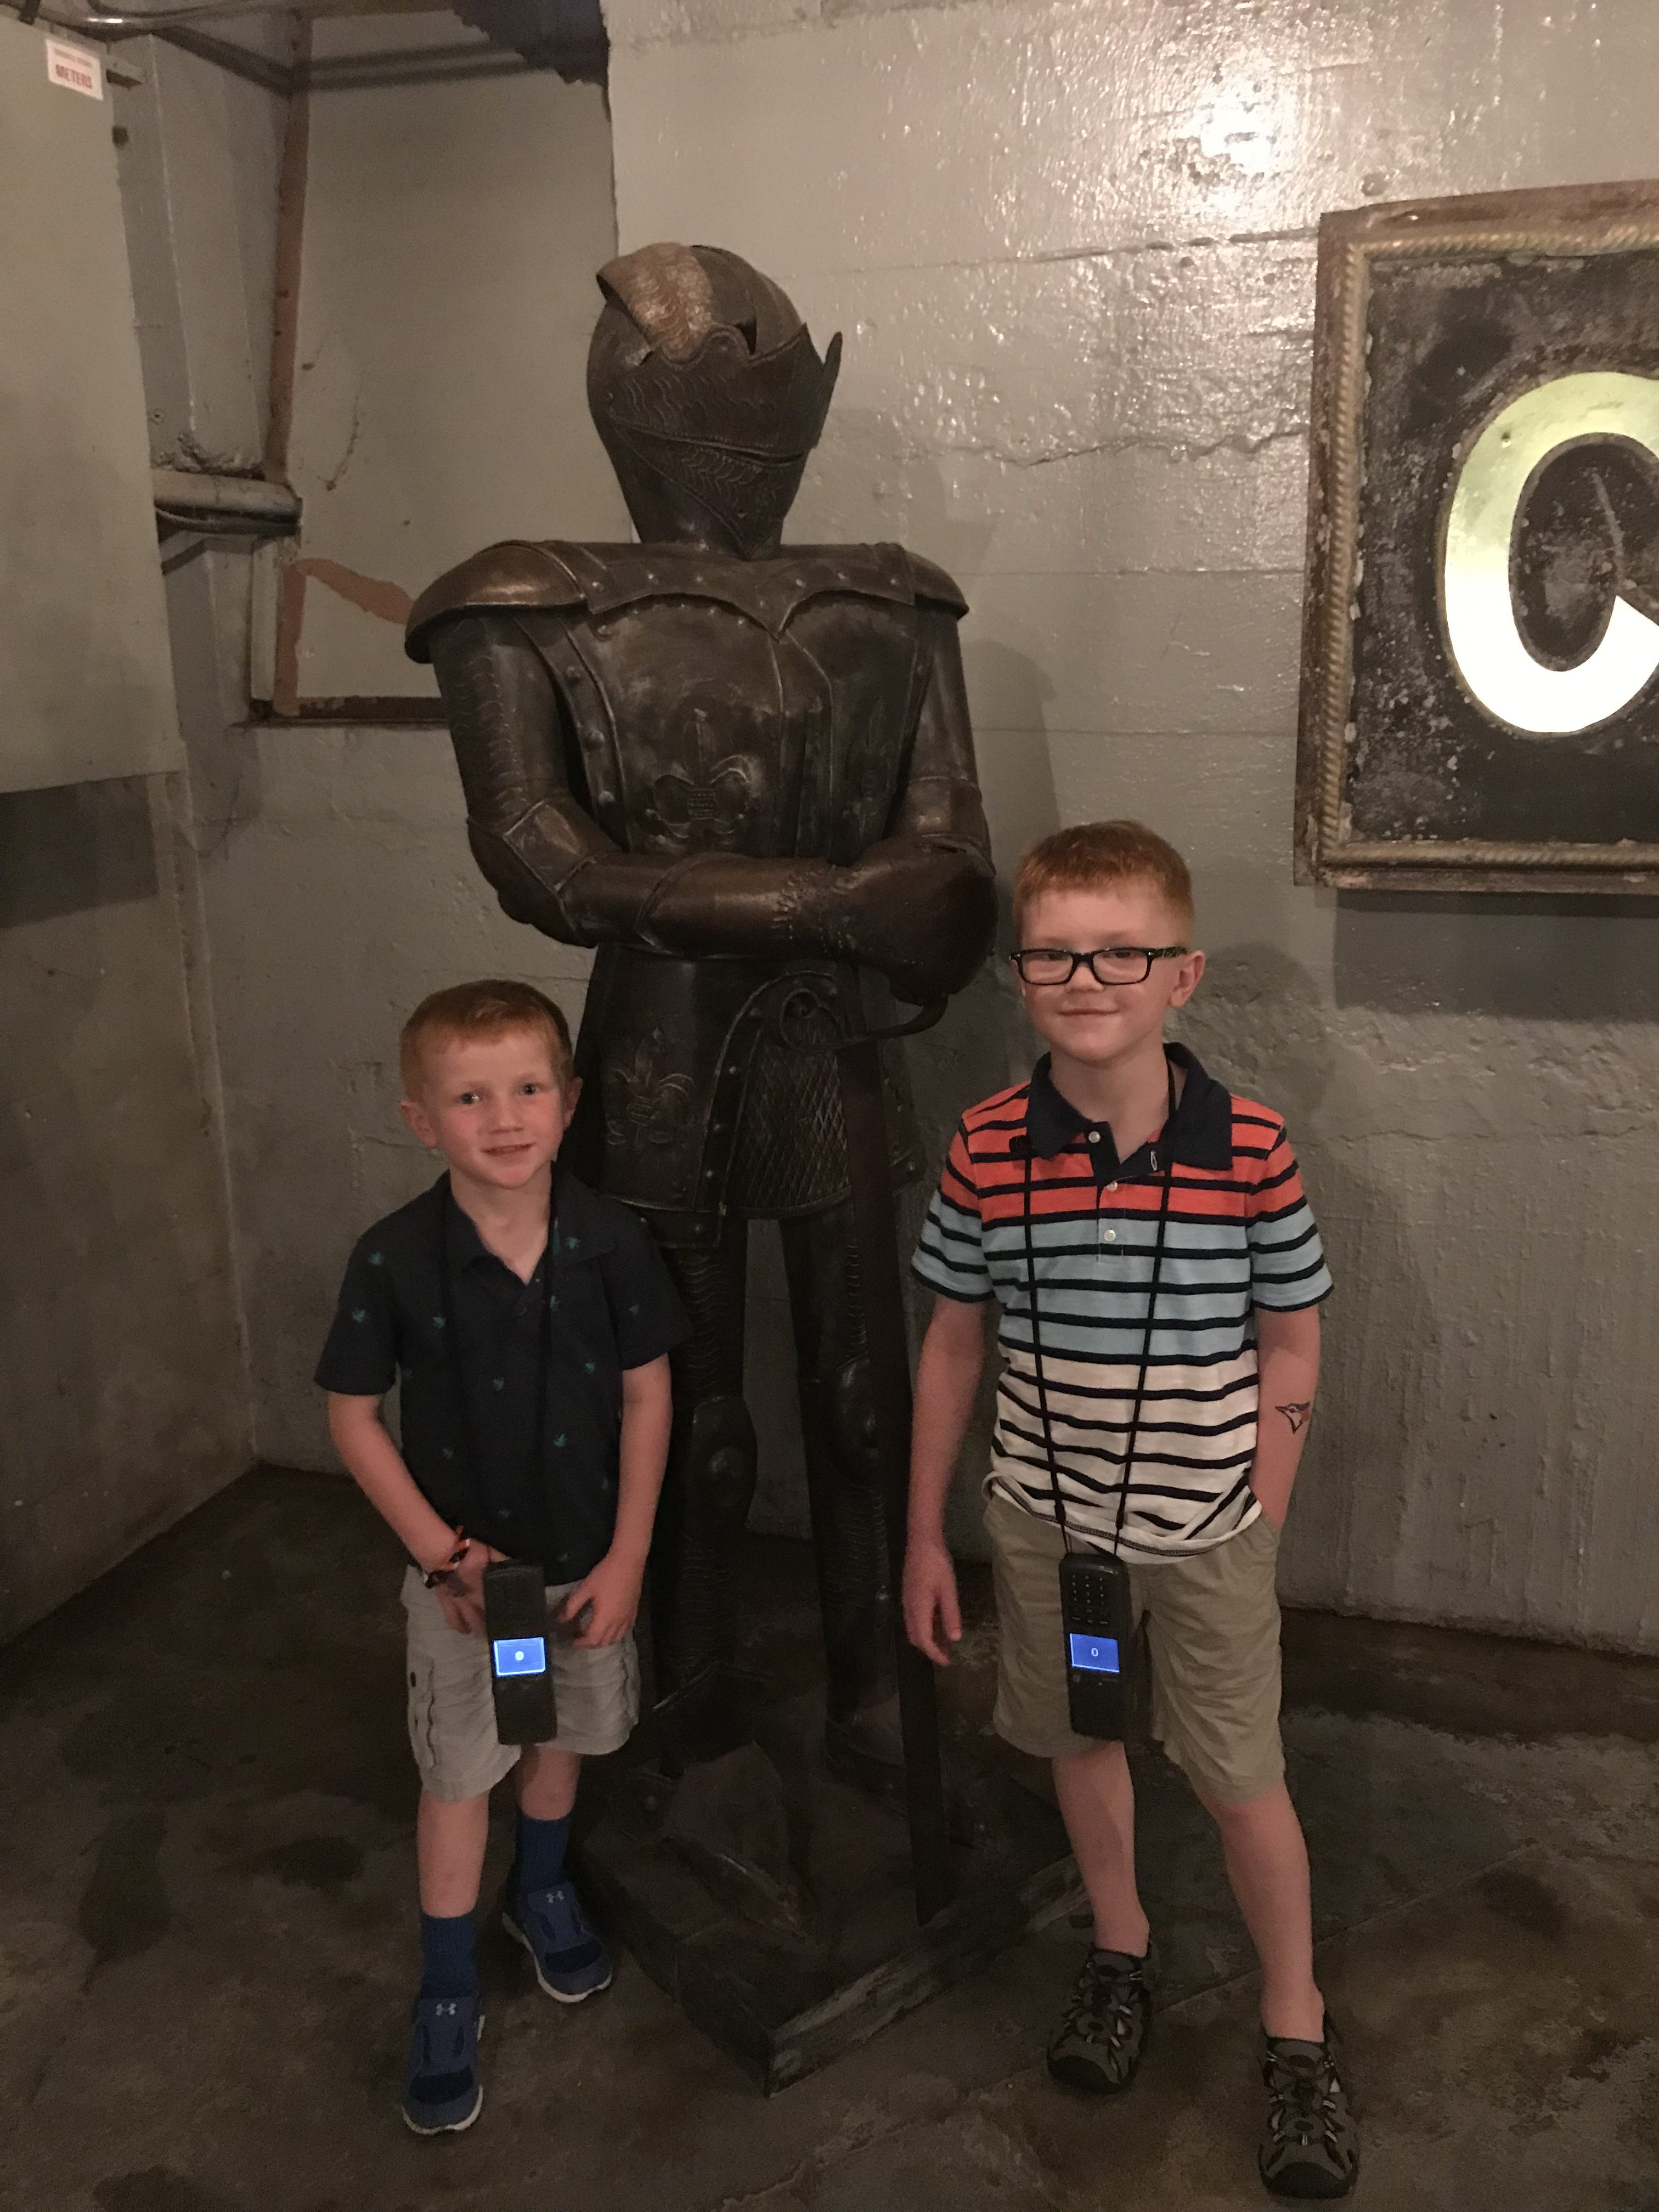 Suit of armor at Casa Loma in Toronto